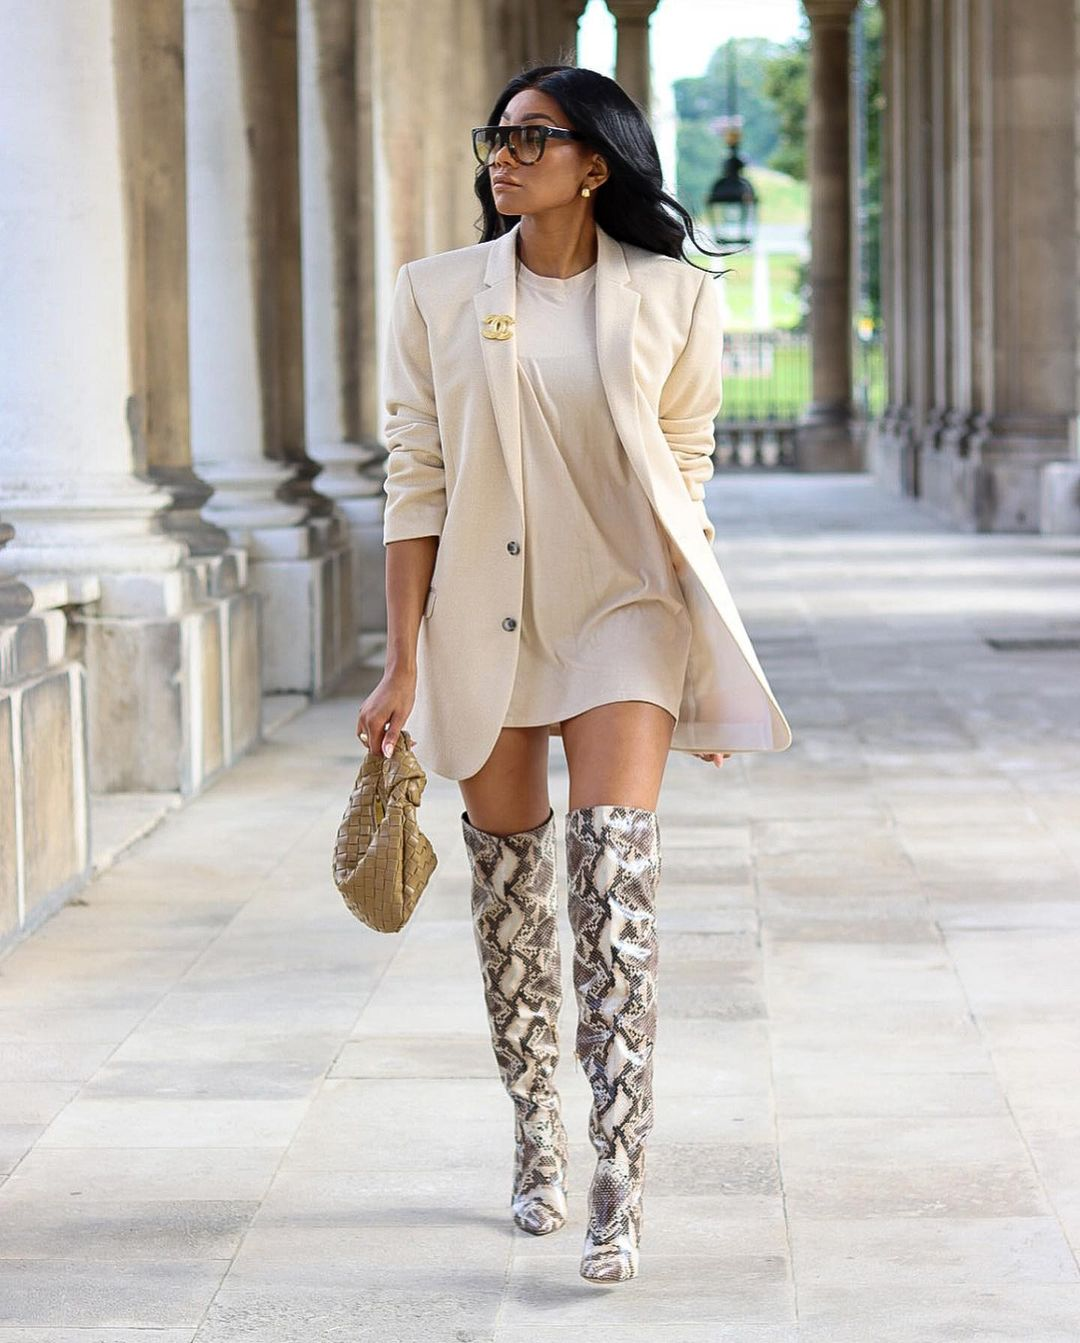 Charlotte Kamale- A Chic Look That Can't Go Wrong